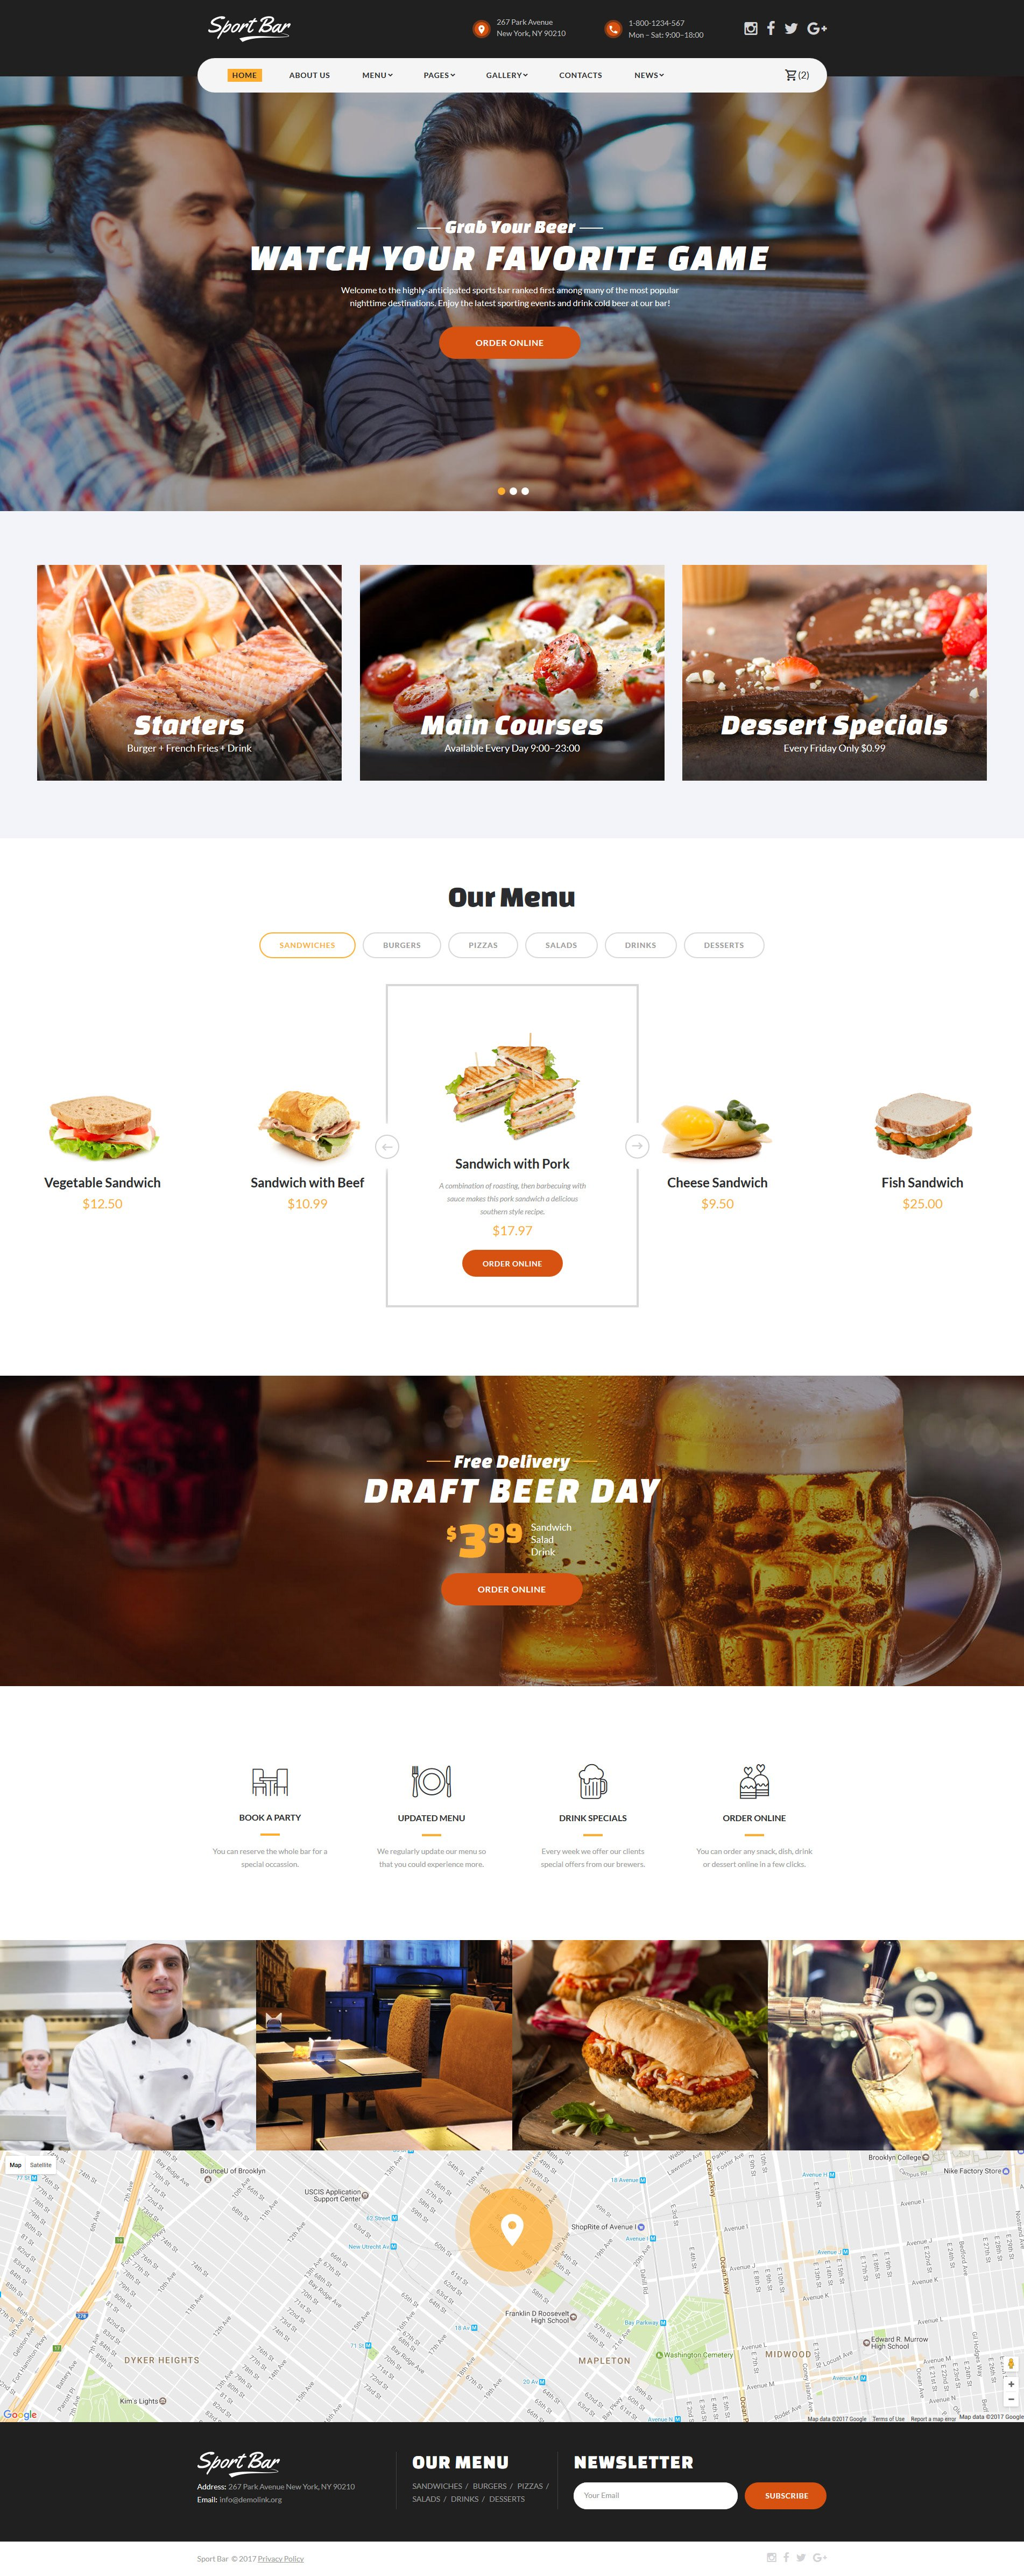 Sports Bar & Restaurant Multipage Website Template